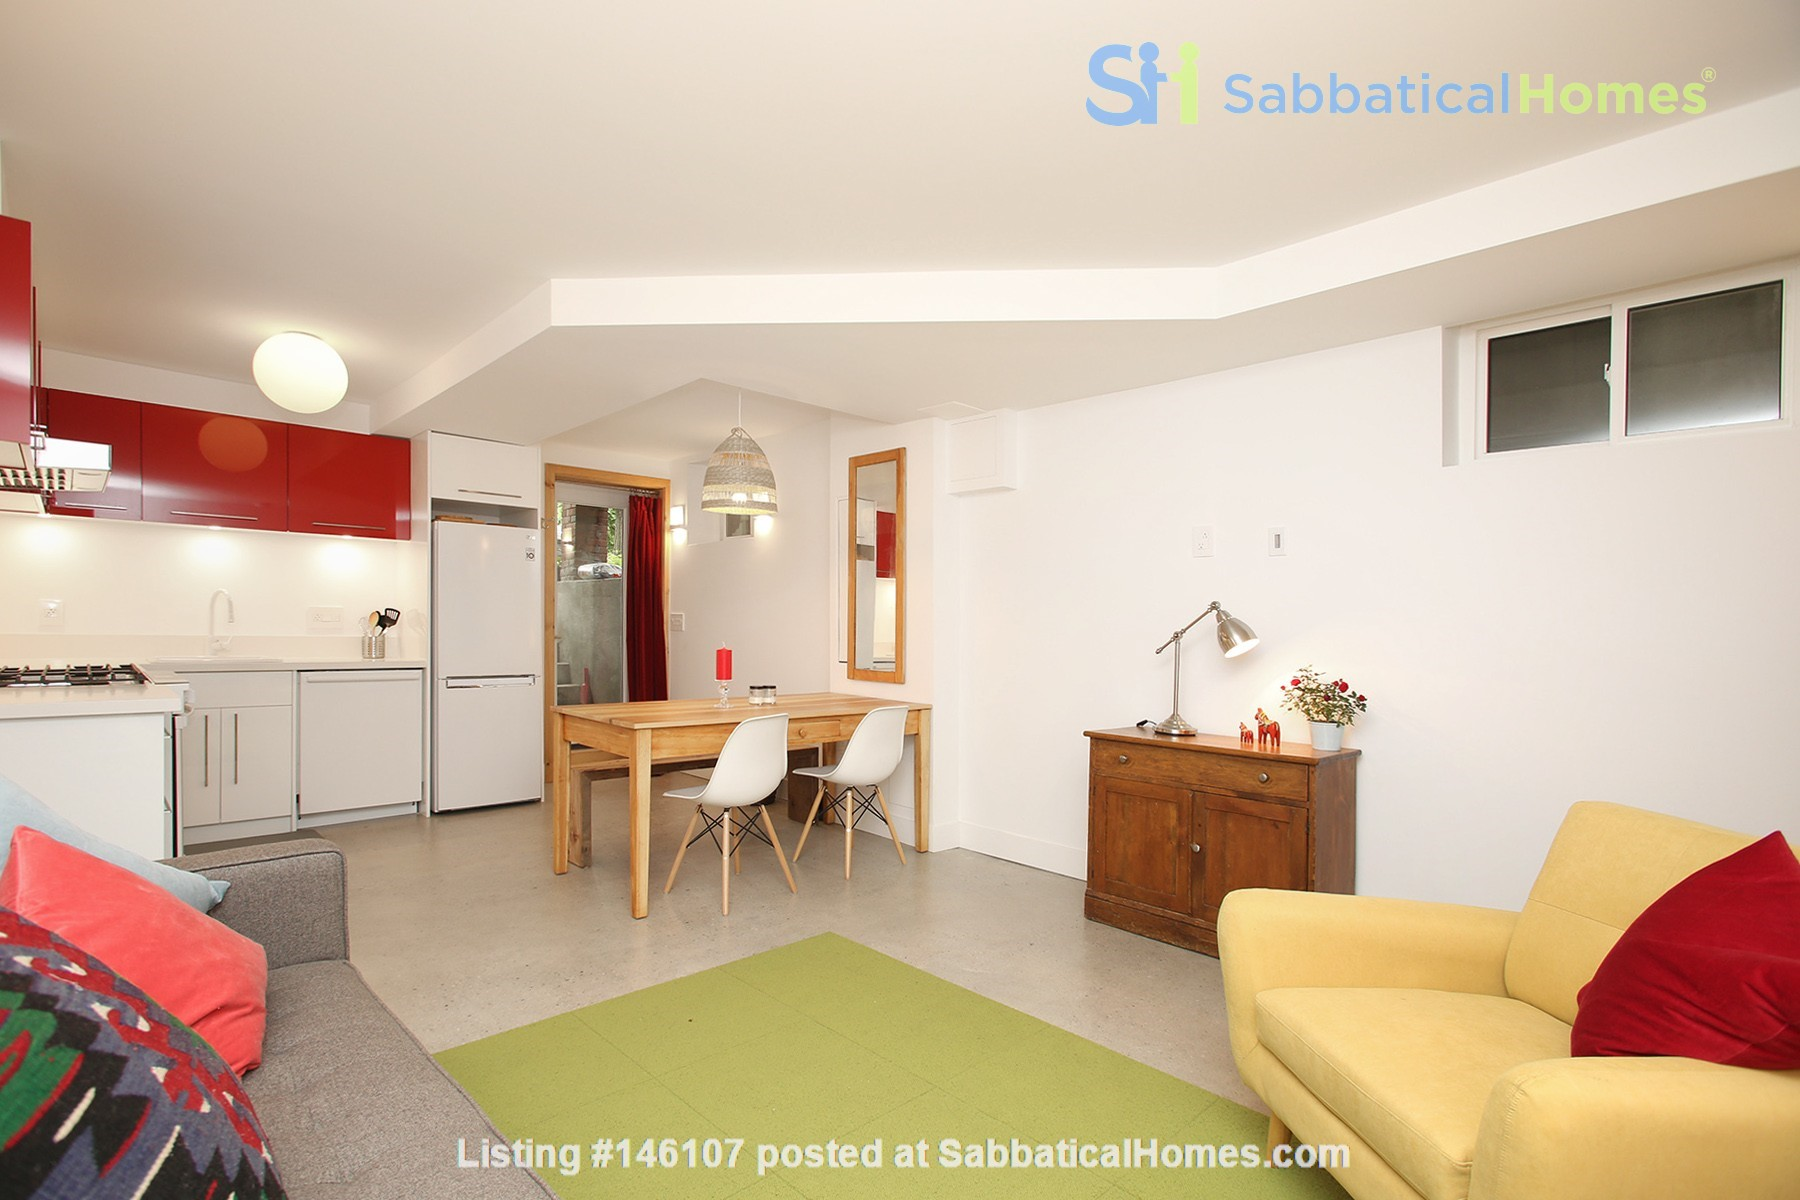 Modern designer space perfect for relaxing and working in! Home Rental in Toronto 4